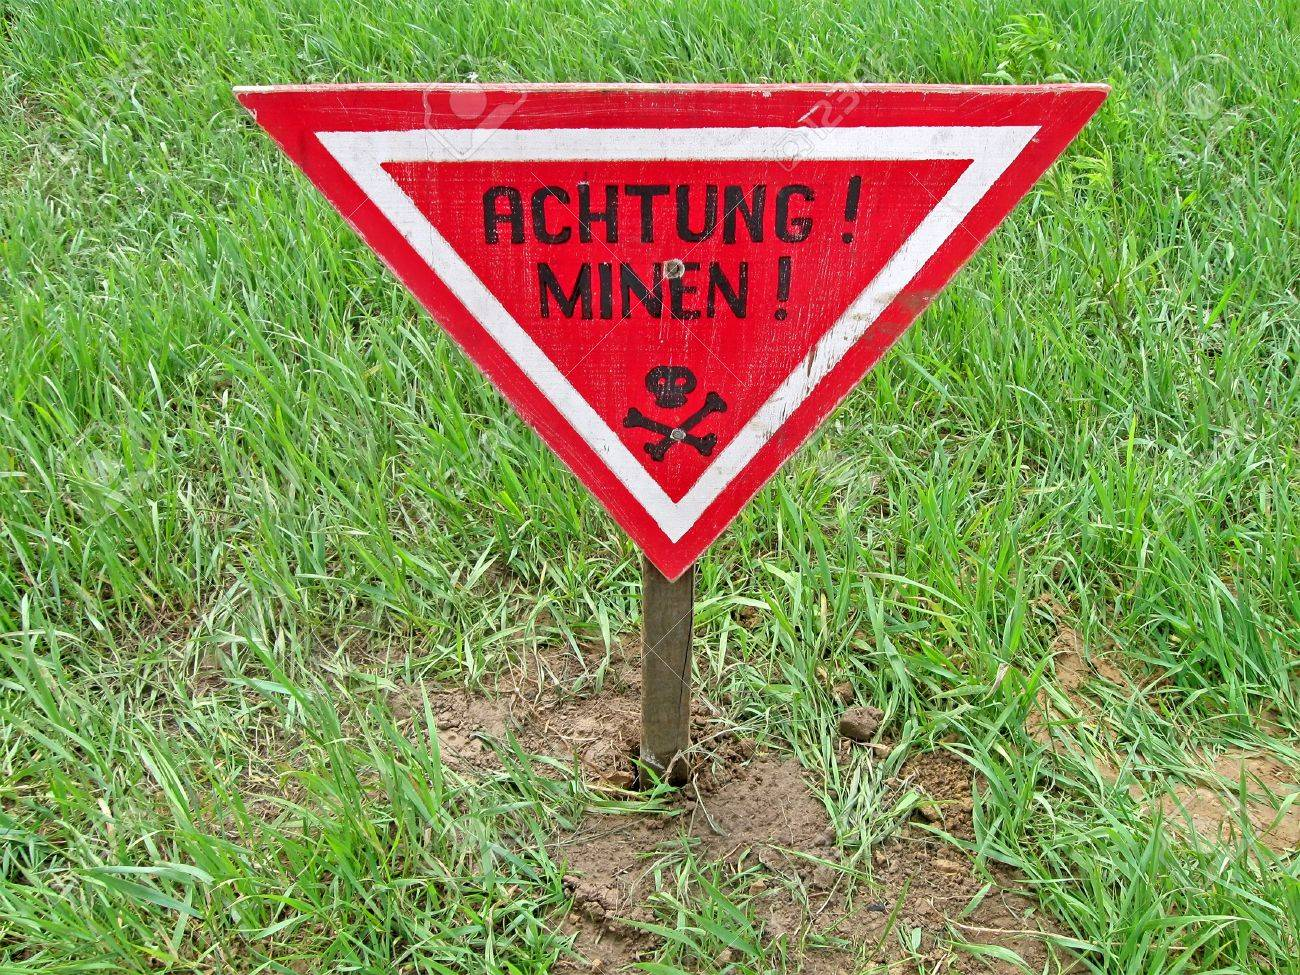 ahtung minen as text on german language, danger red sign warning Stock Photo - 13859417